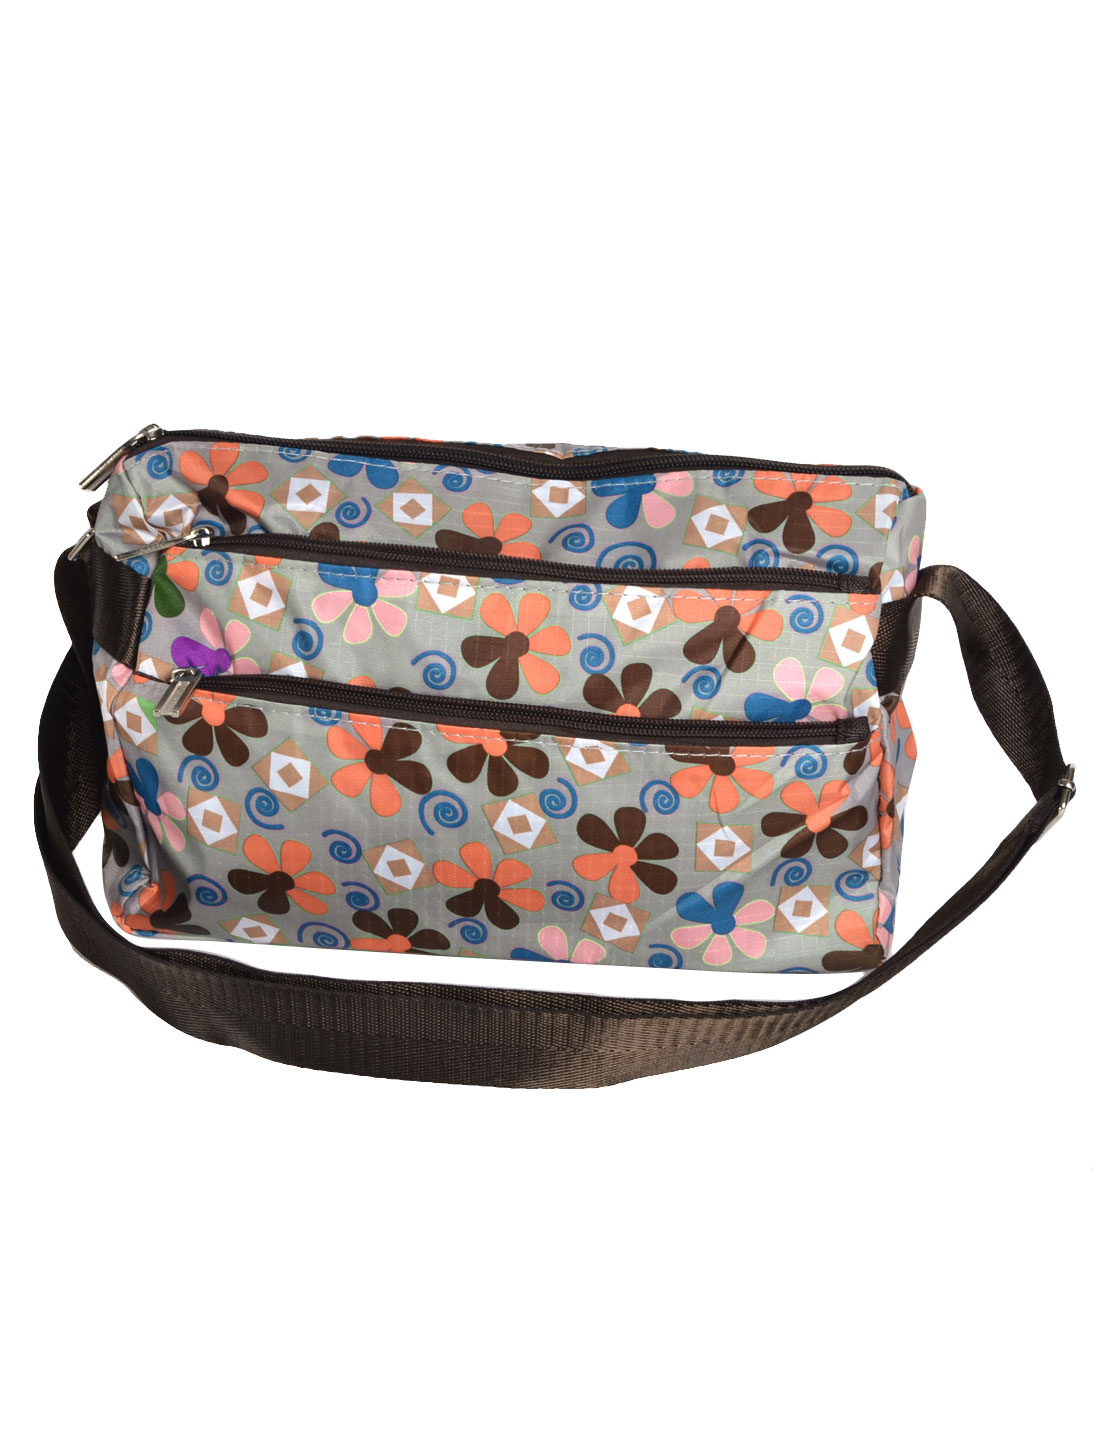 Lady Flower Pattern 3 Compartment Zipper Closure Nylon Shoulder Bag Handbag